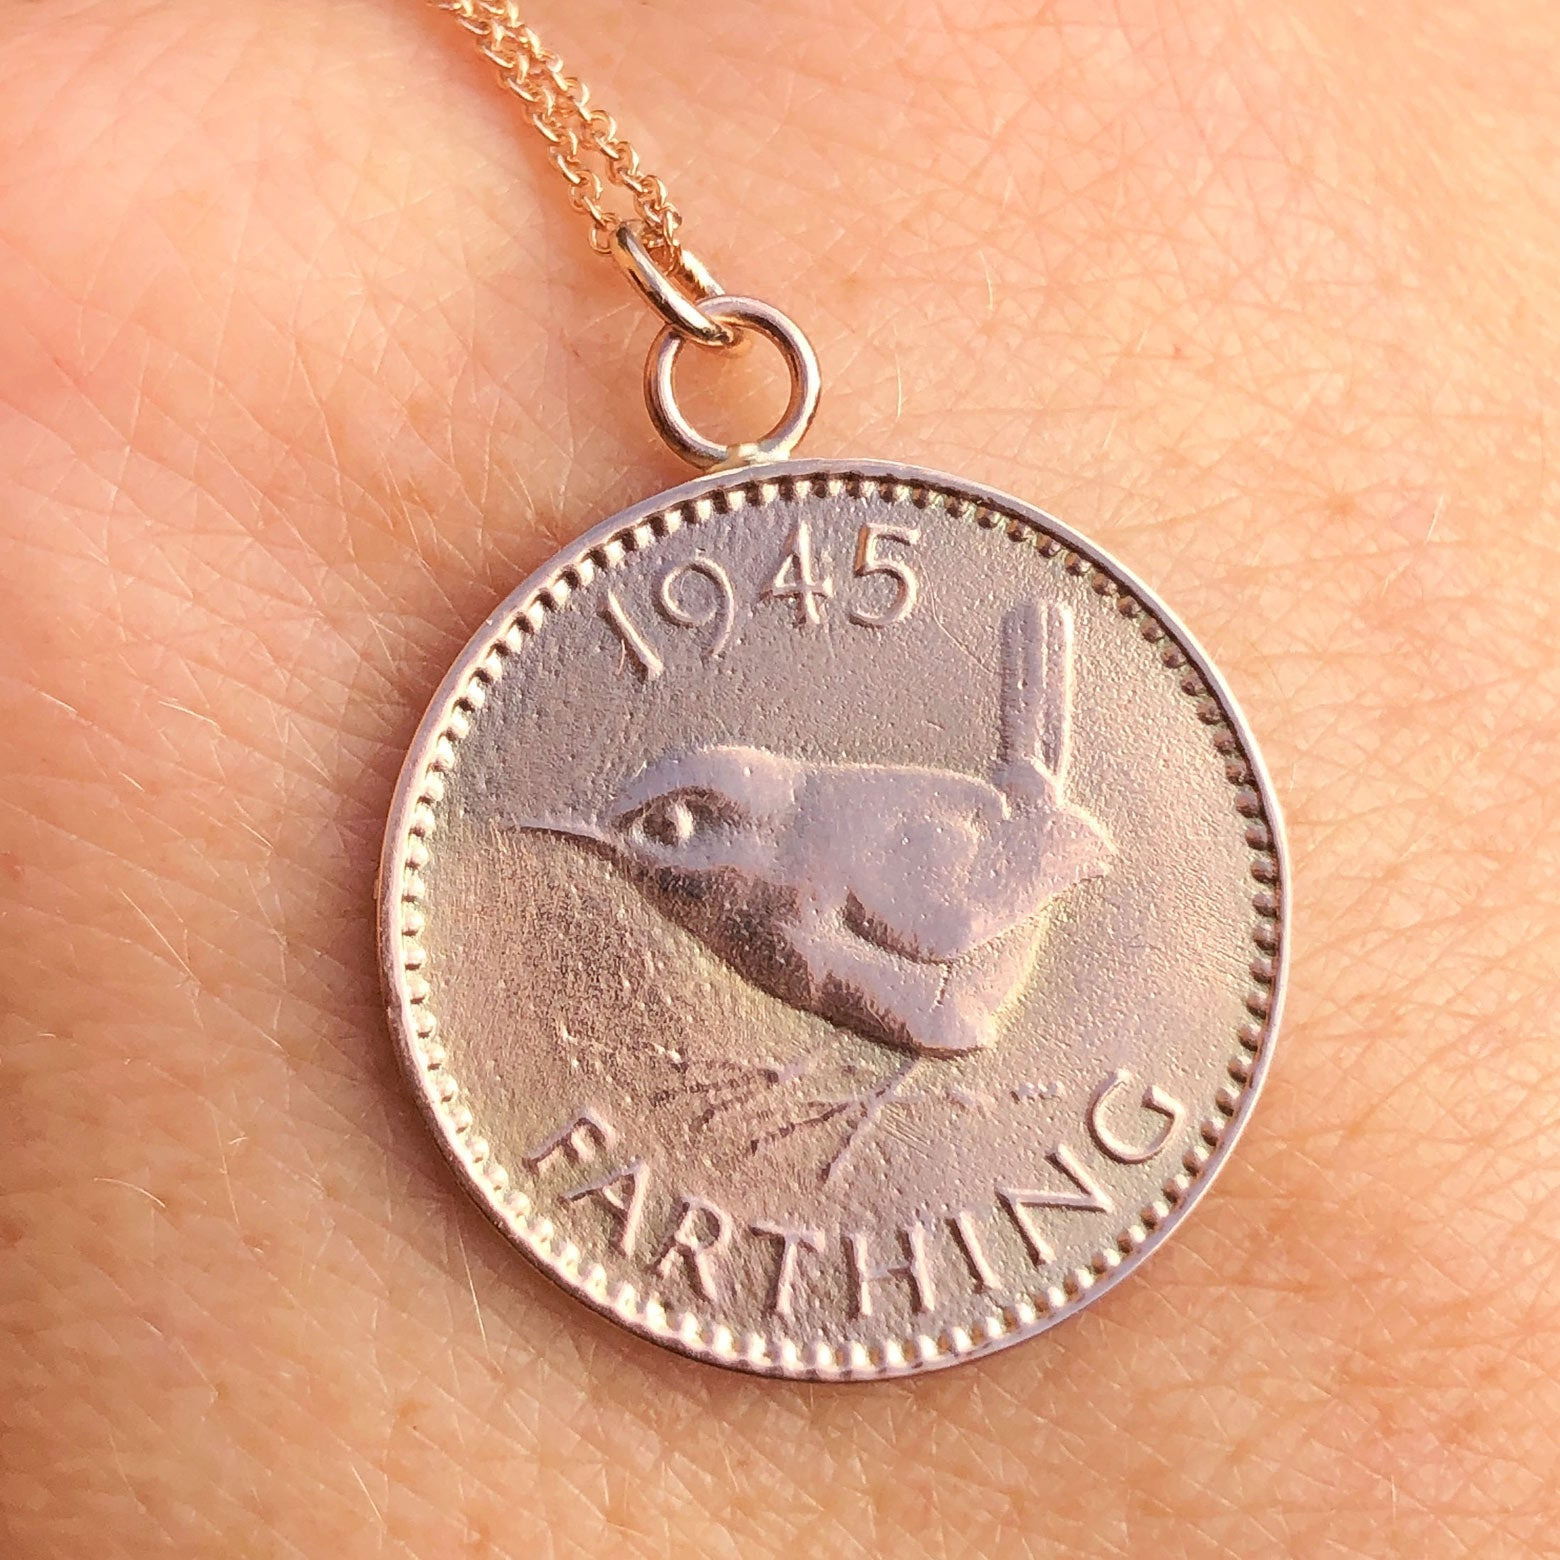 Solid Gold English Farthing Necklace